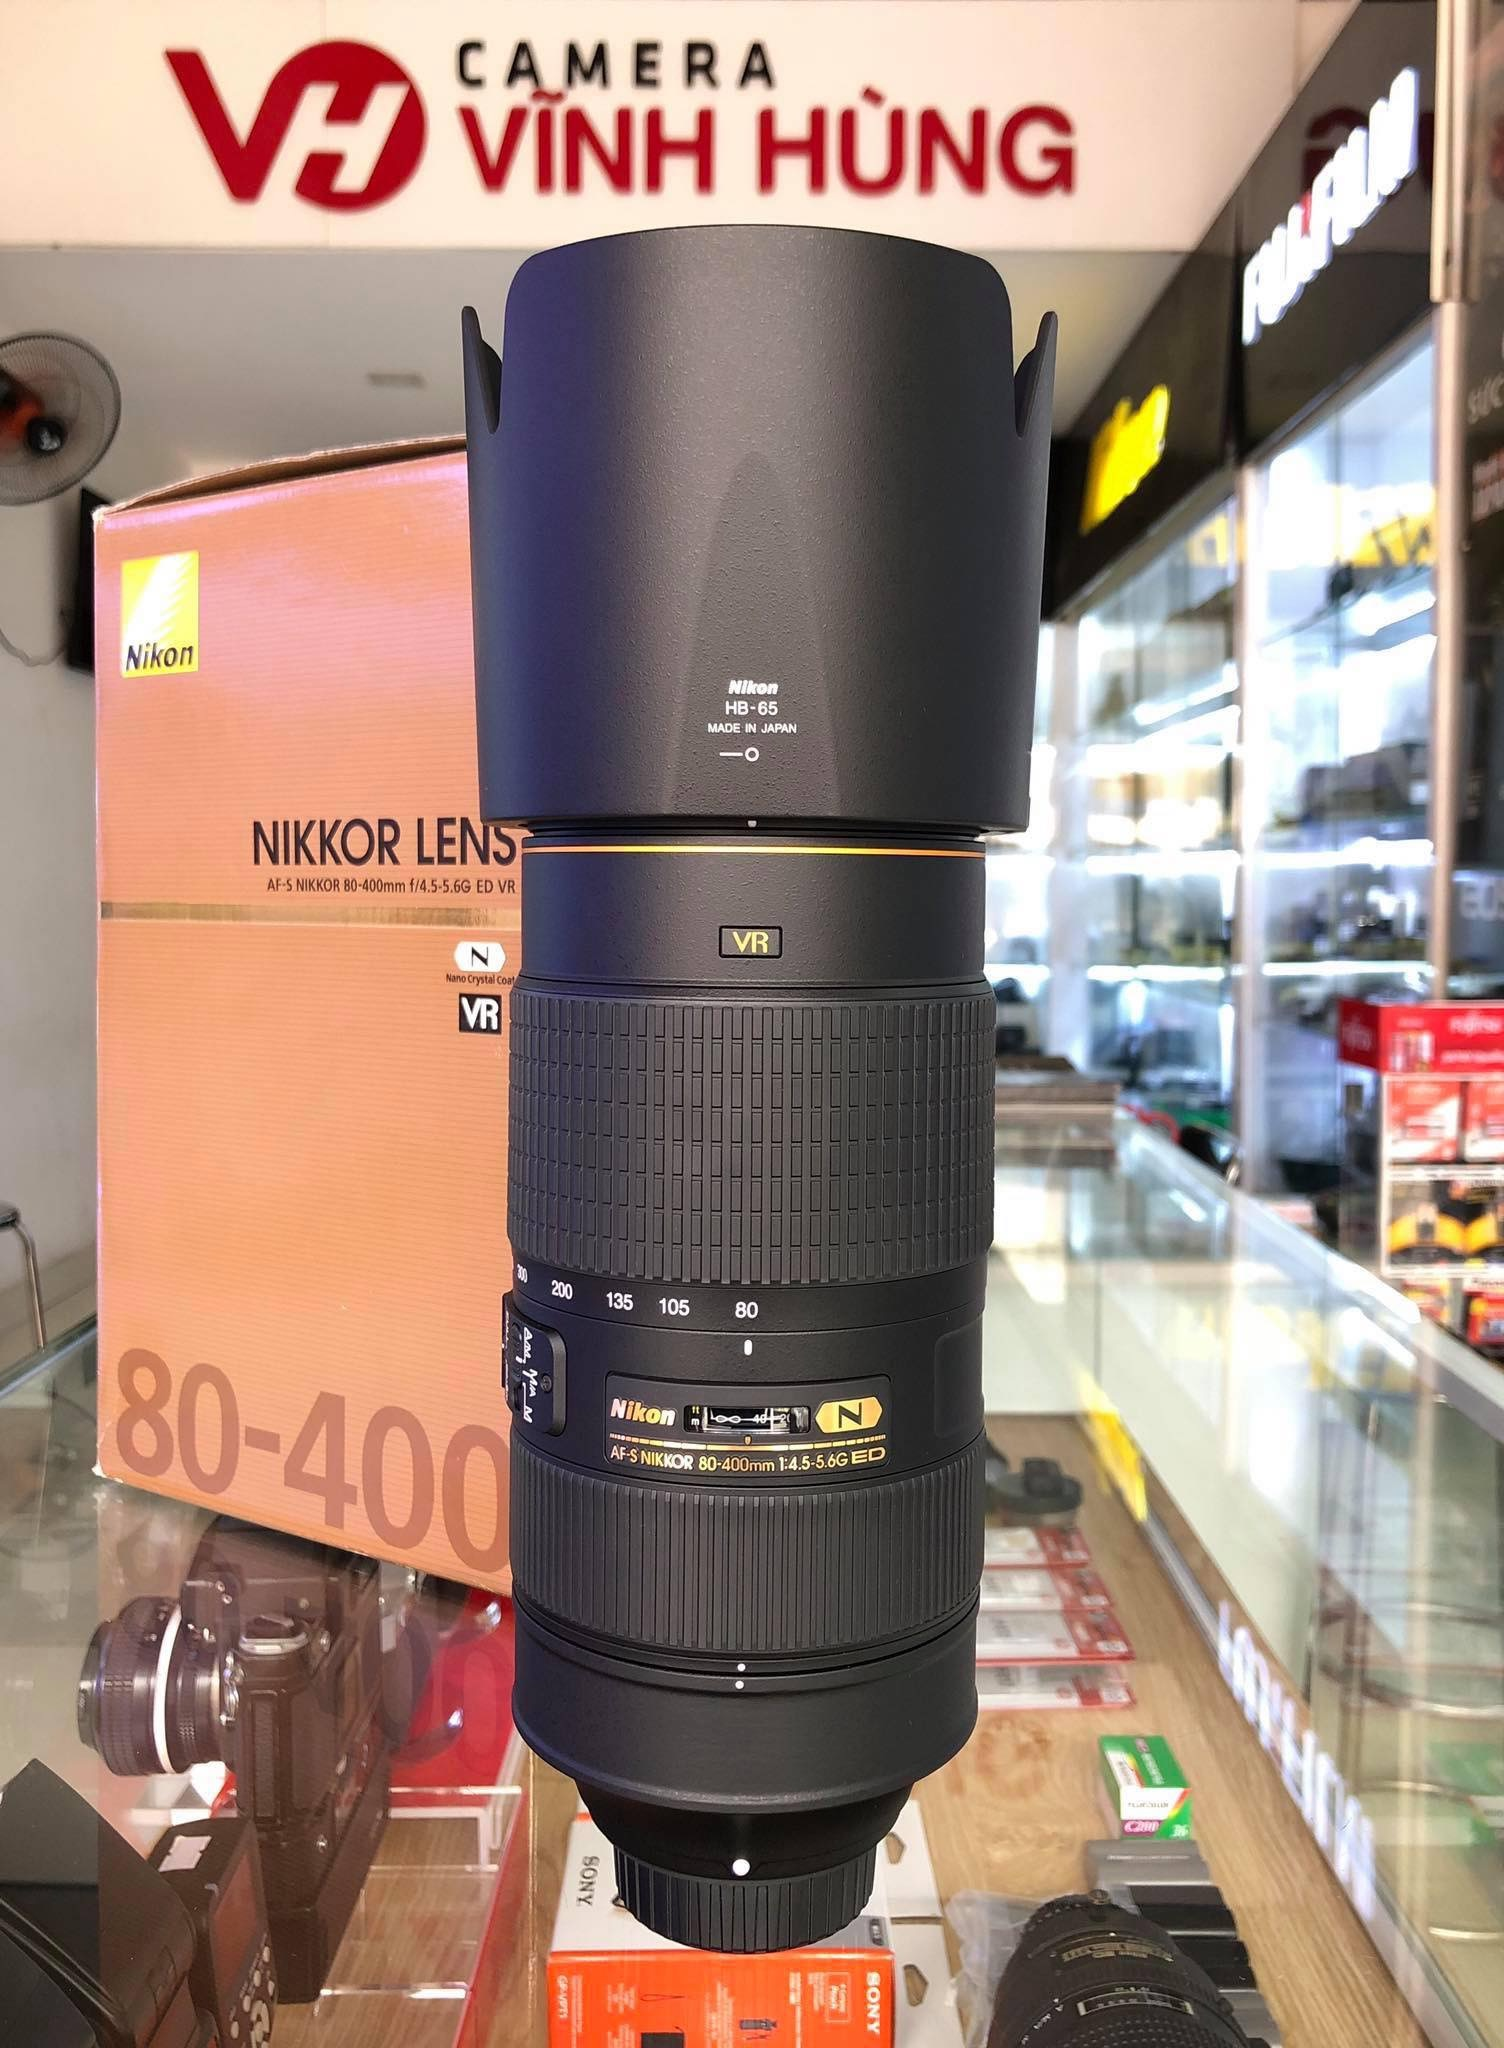 Nikon 80-400mm f/4.5-5.6G VR (Like New) fullbox